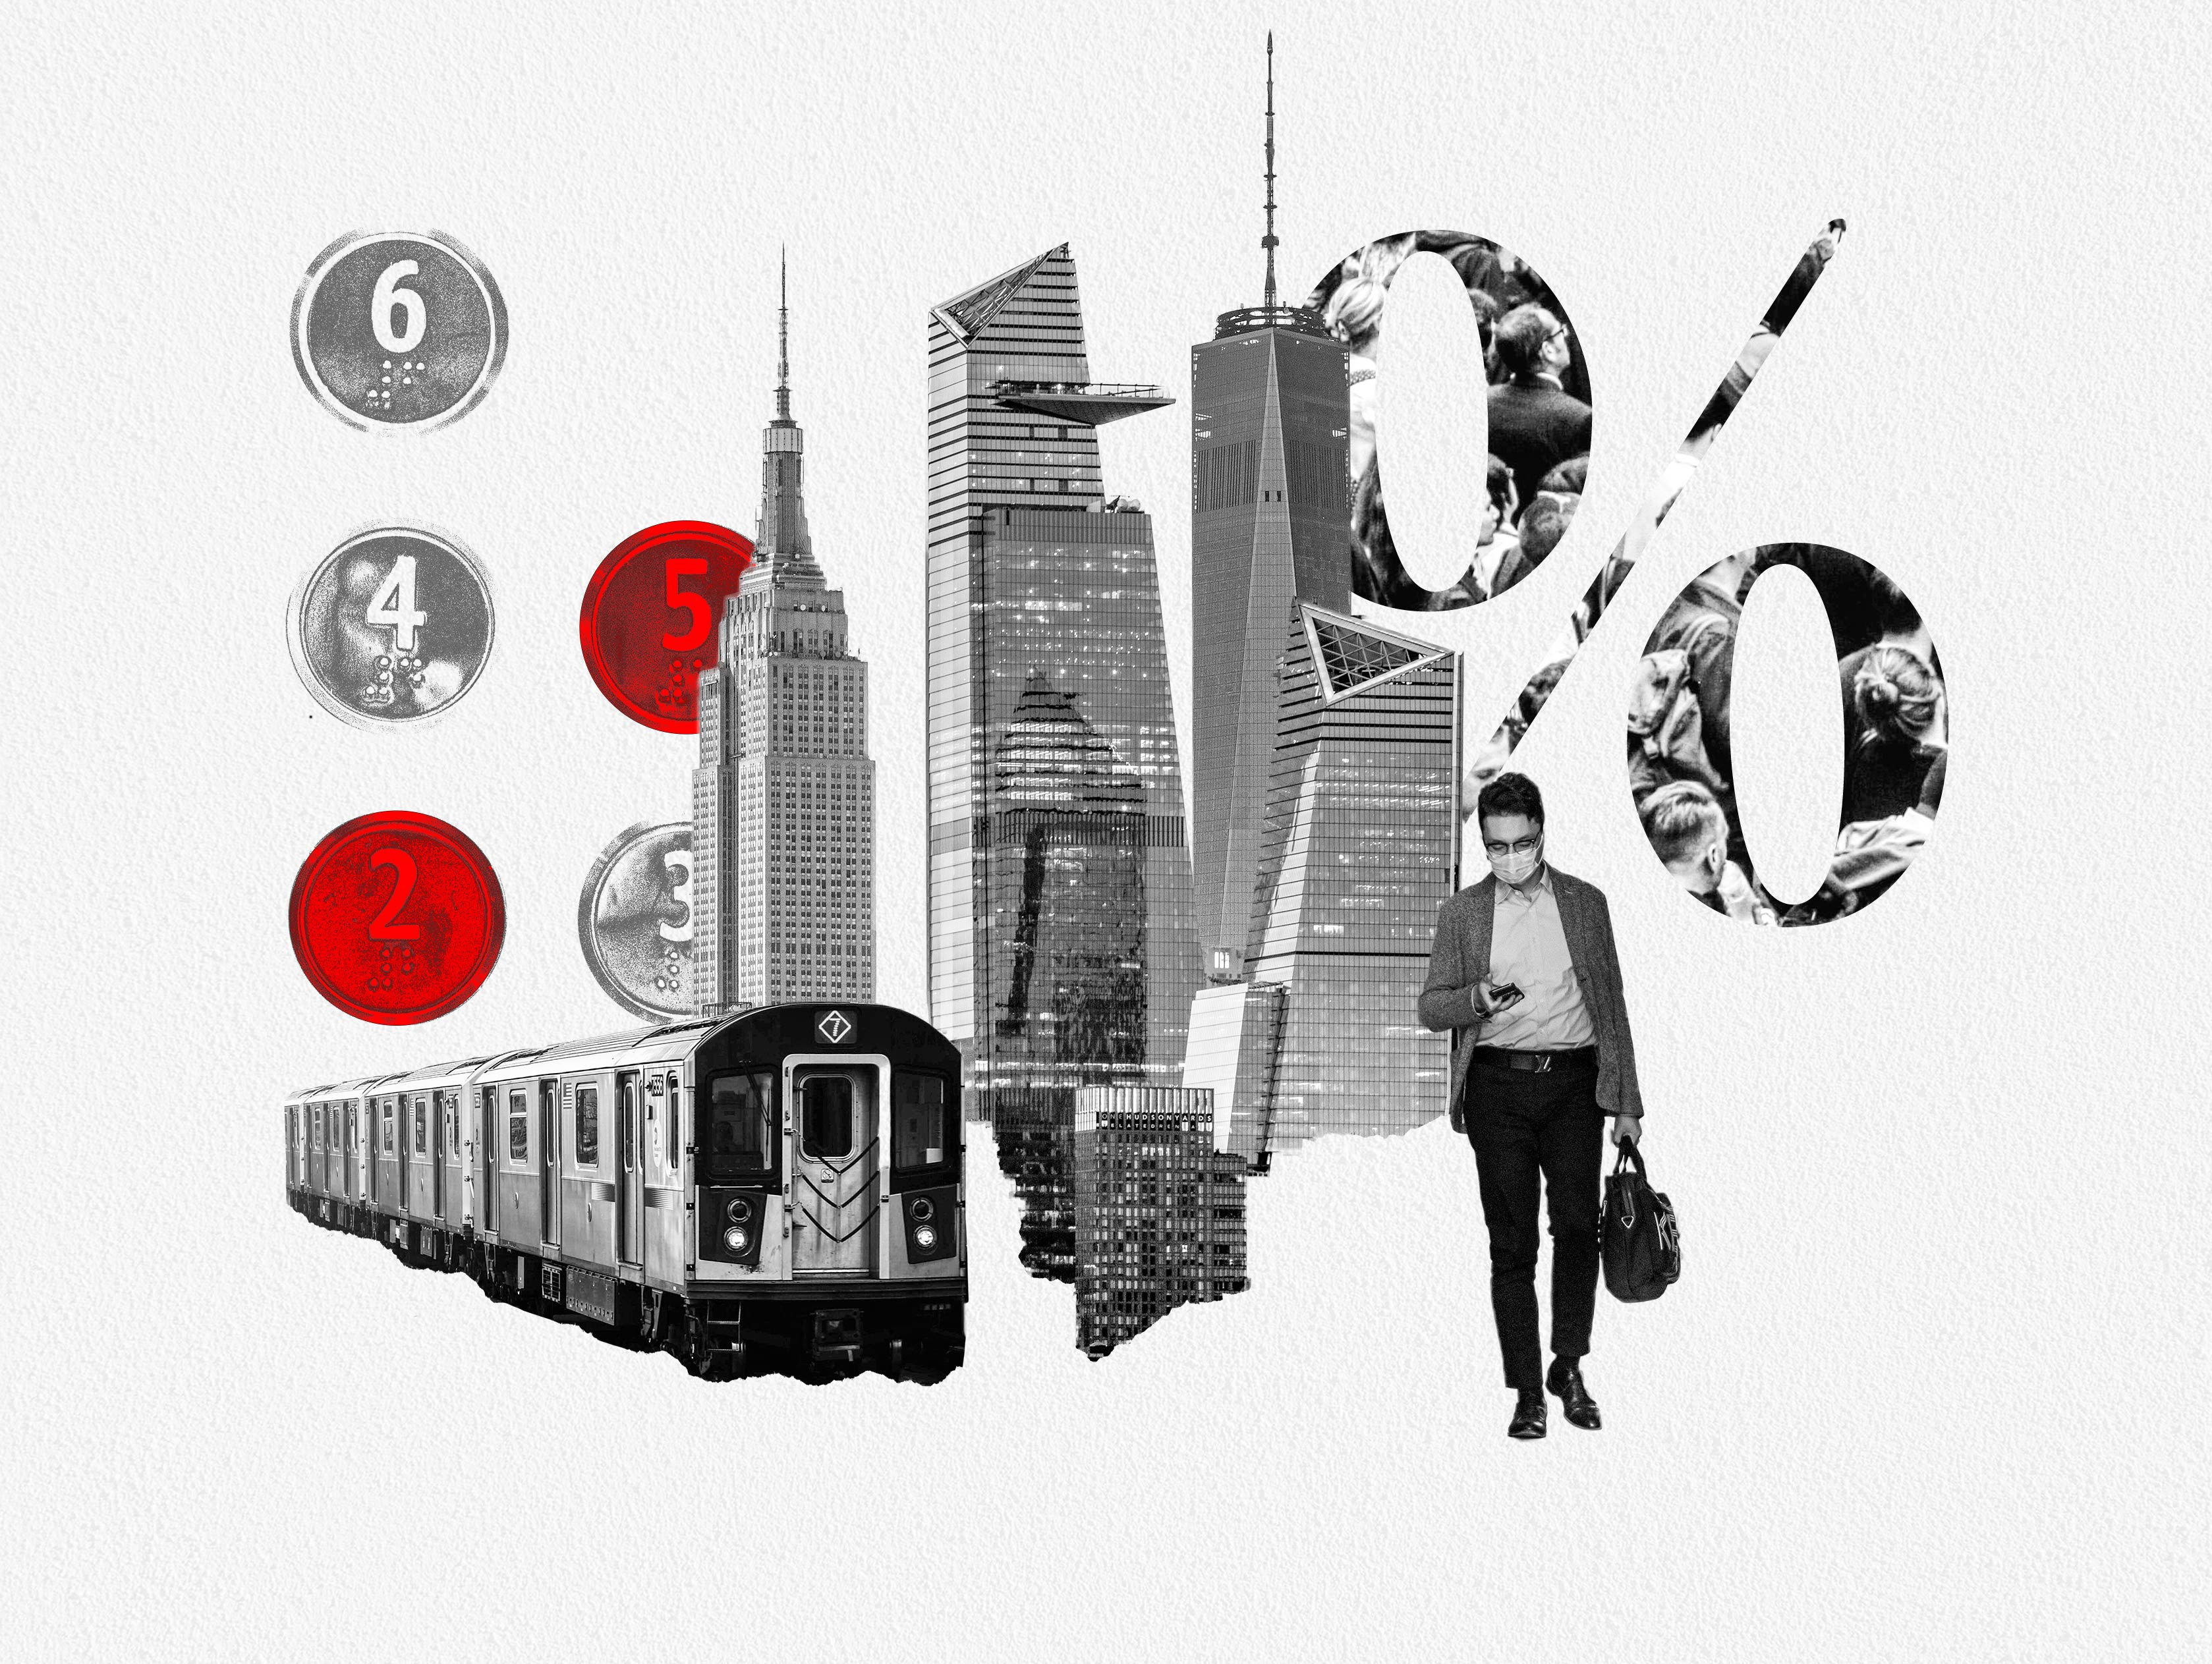 Photo Montage: NYC skyscrapers, Subway Car, Business Person, Elevator Buttons with 2 and 5 highlighted in red, and Percent Symbol.